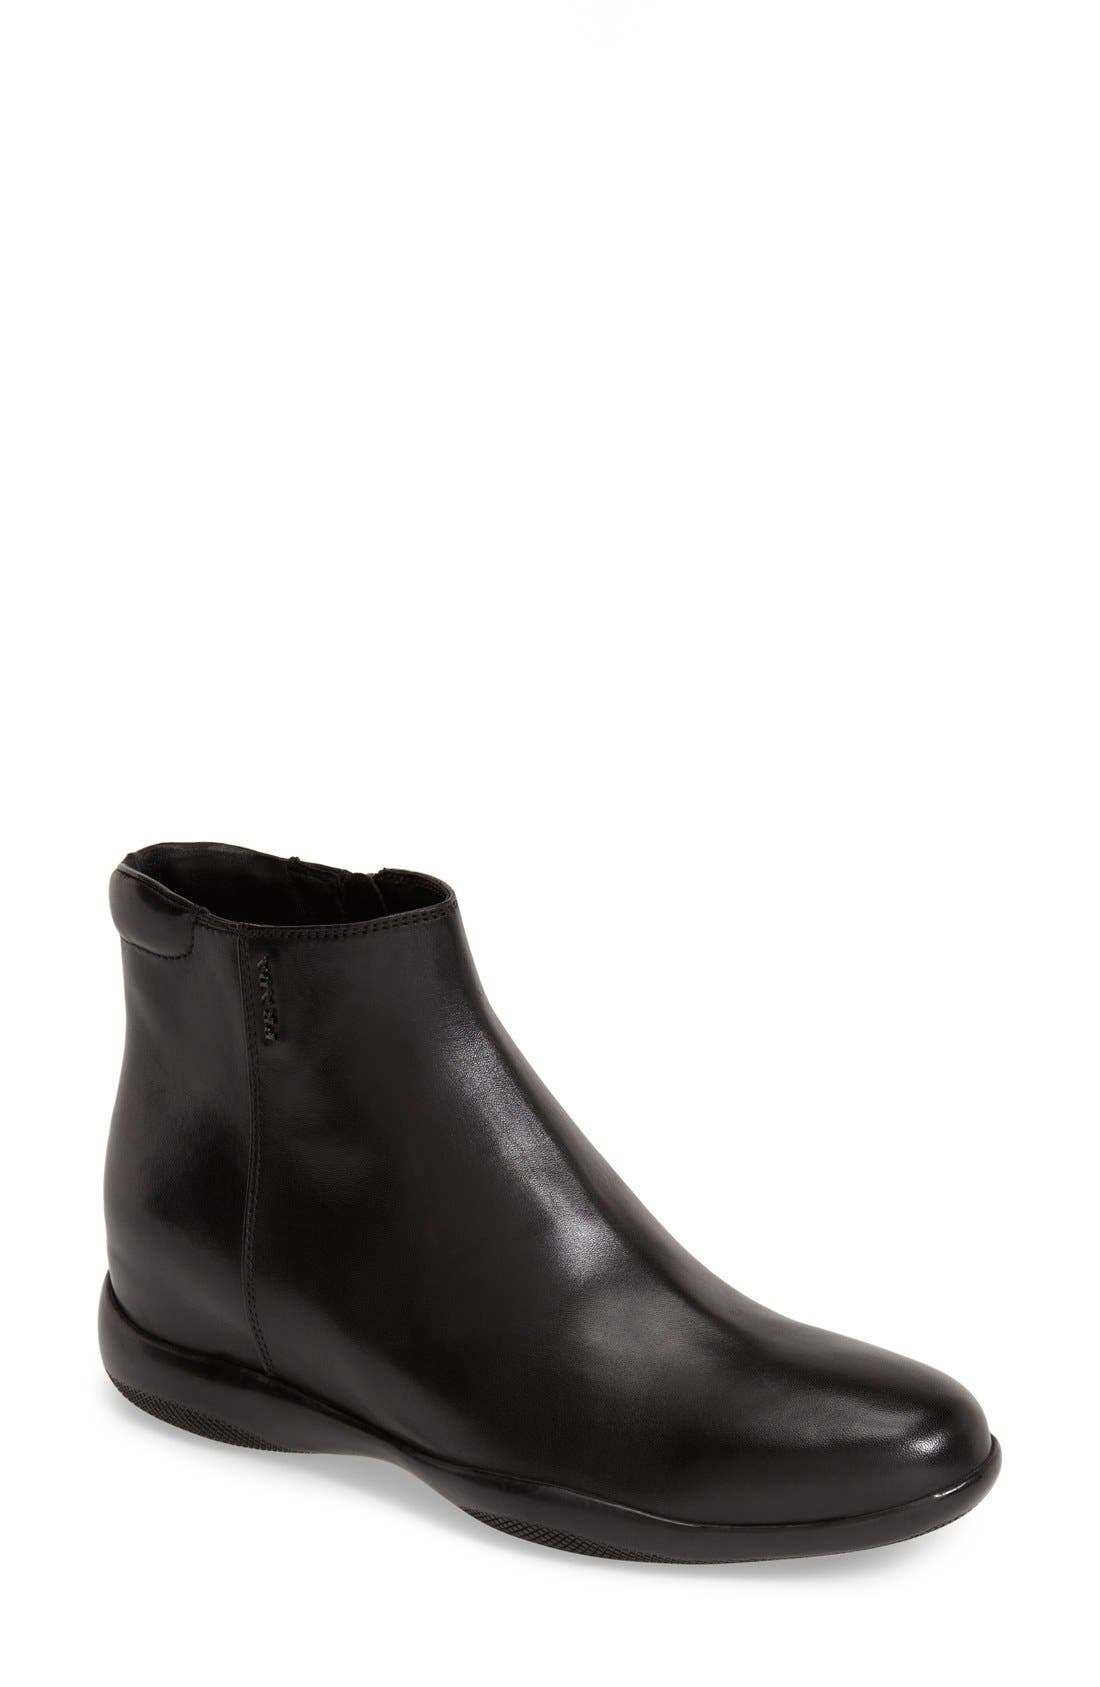 Main Image - Prada Wedge Ankle Boot